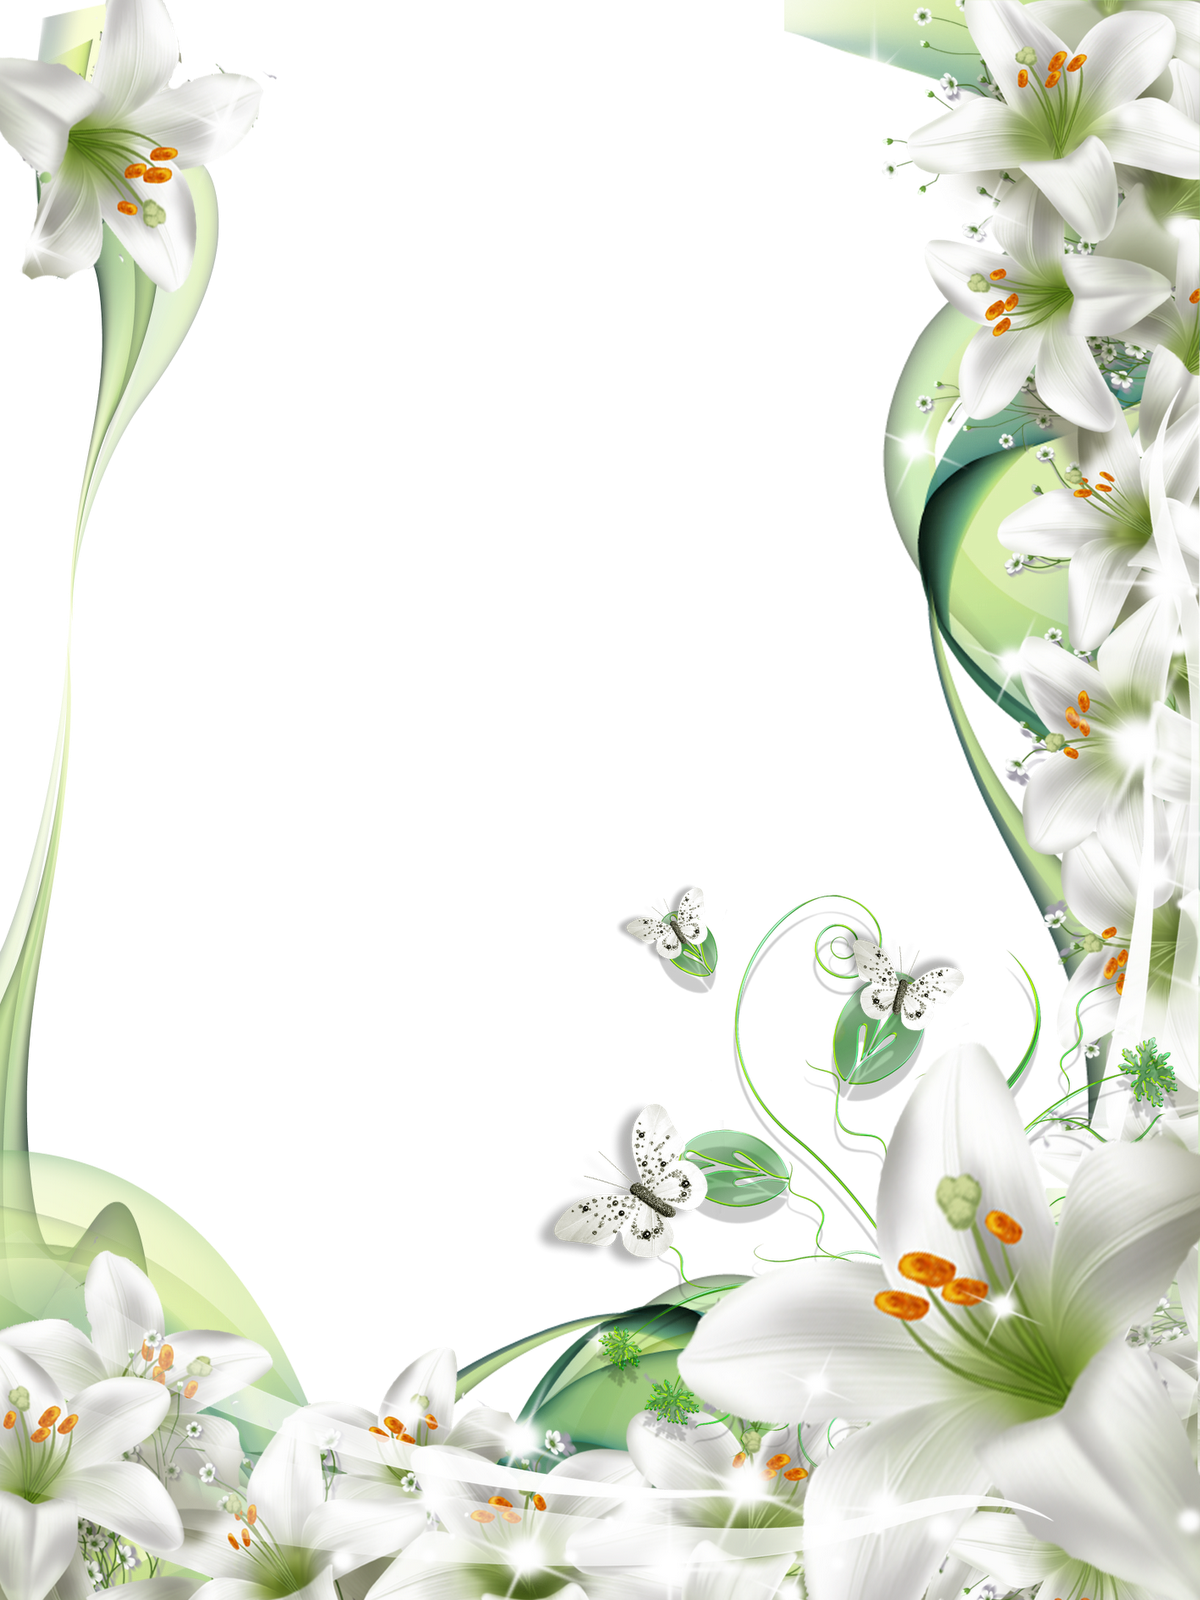 Woodland clipart boarder. Lilies frame suitable for